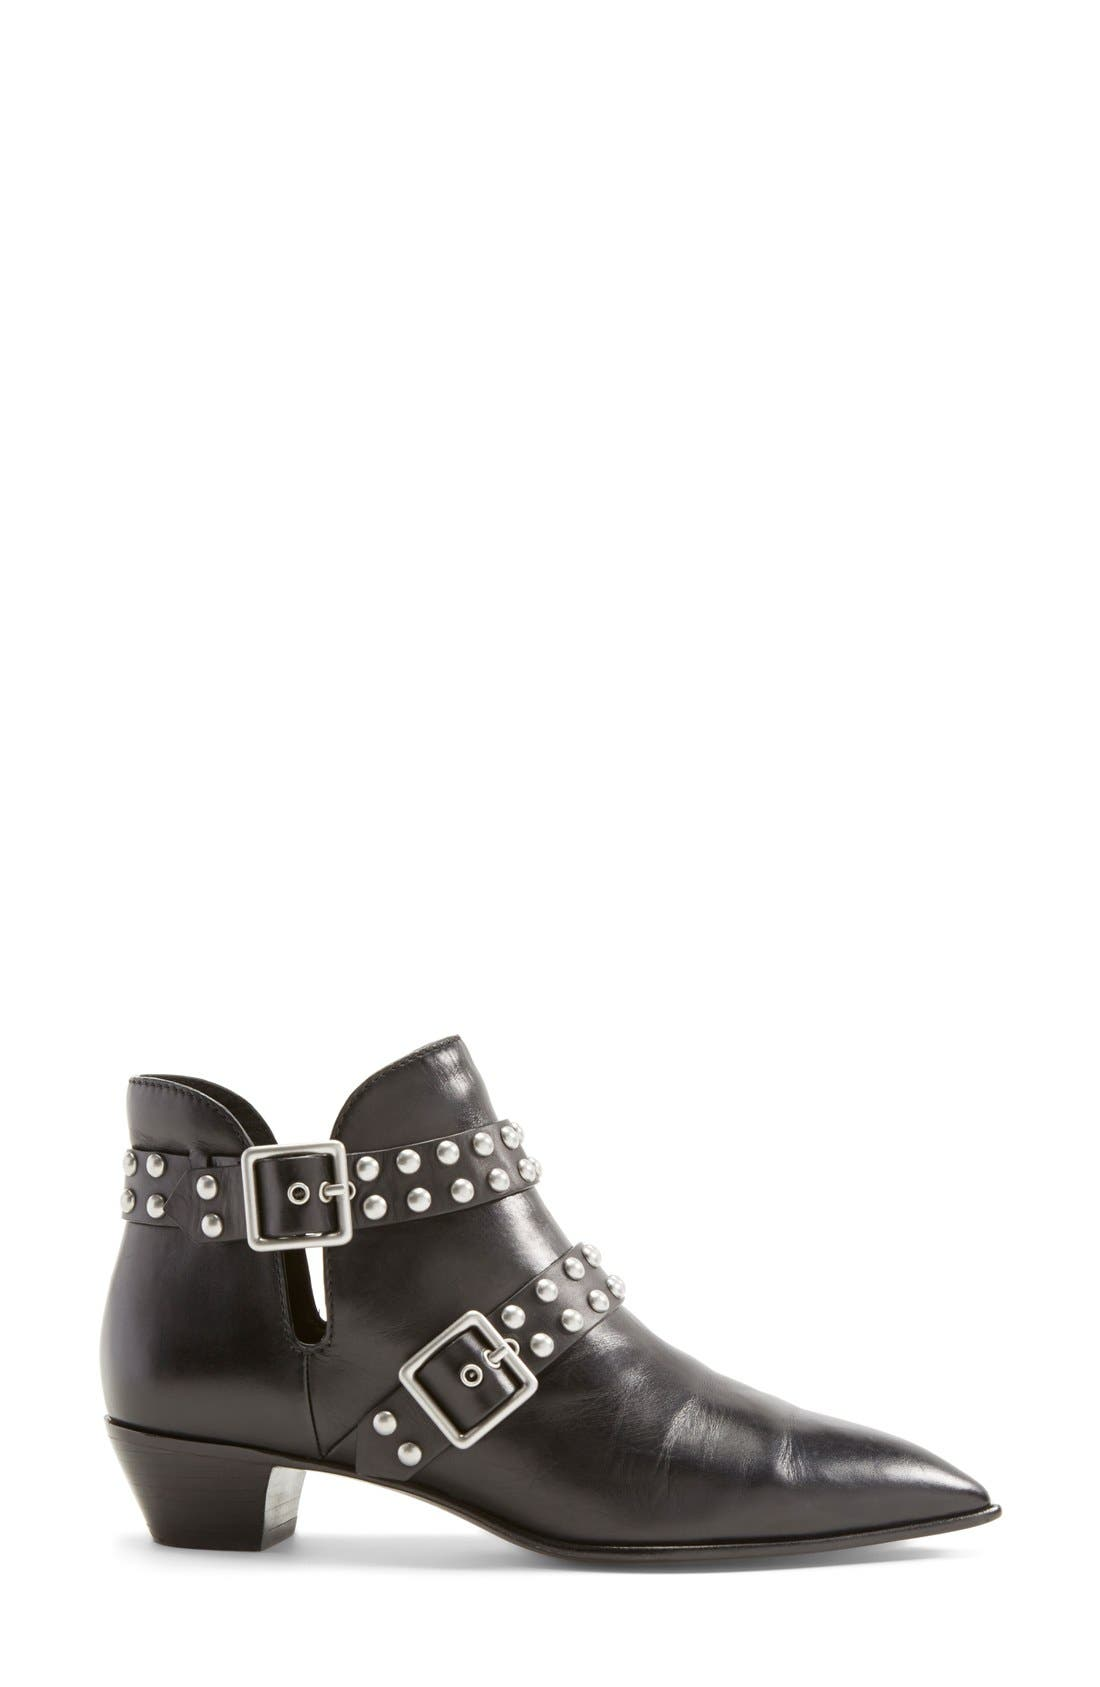 MARC BY MARC JACOBS 'Carroll' Studded Leather Pointy Toe Ankle Boot,                             Alternate thumbnail 6, color,                             001